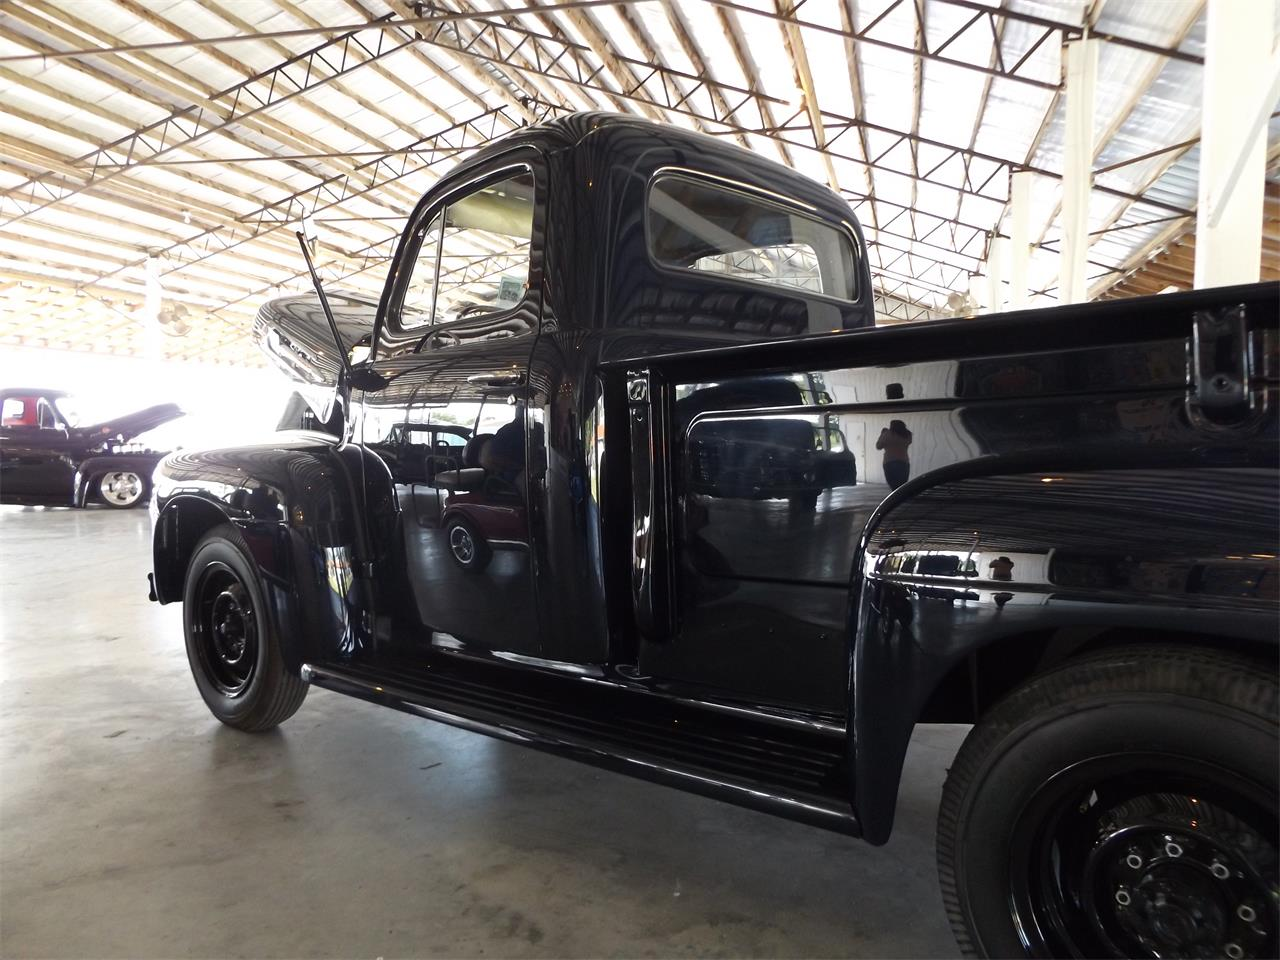 Large Picture of '52 Ford Truck - $69,900.00 Offered by a Private Seller - LHM3